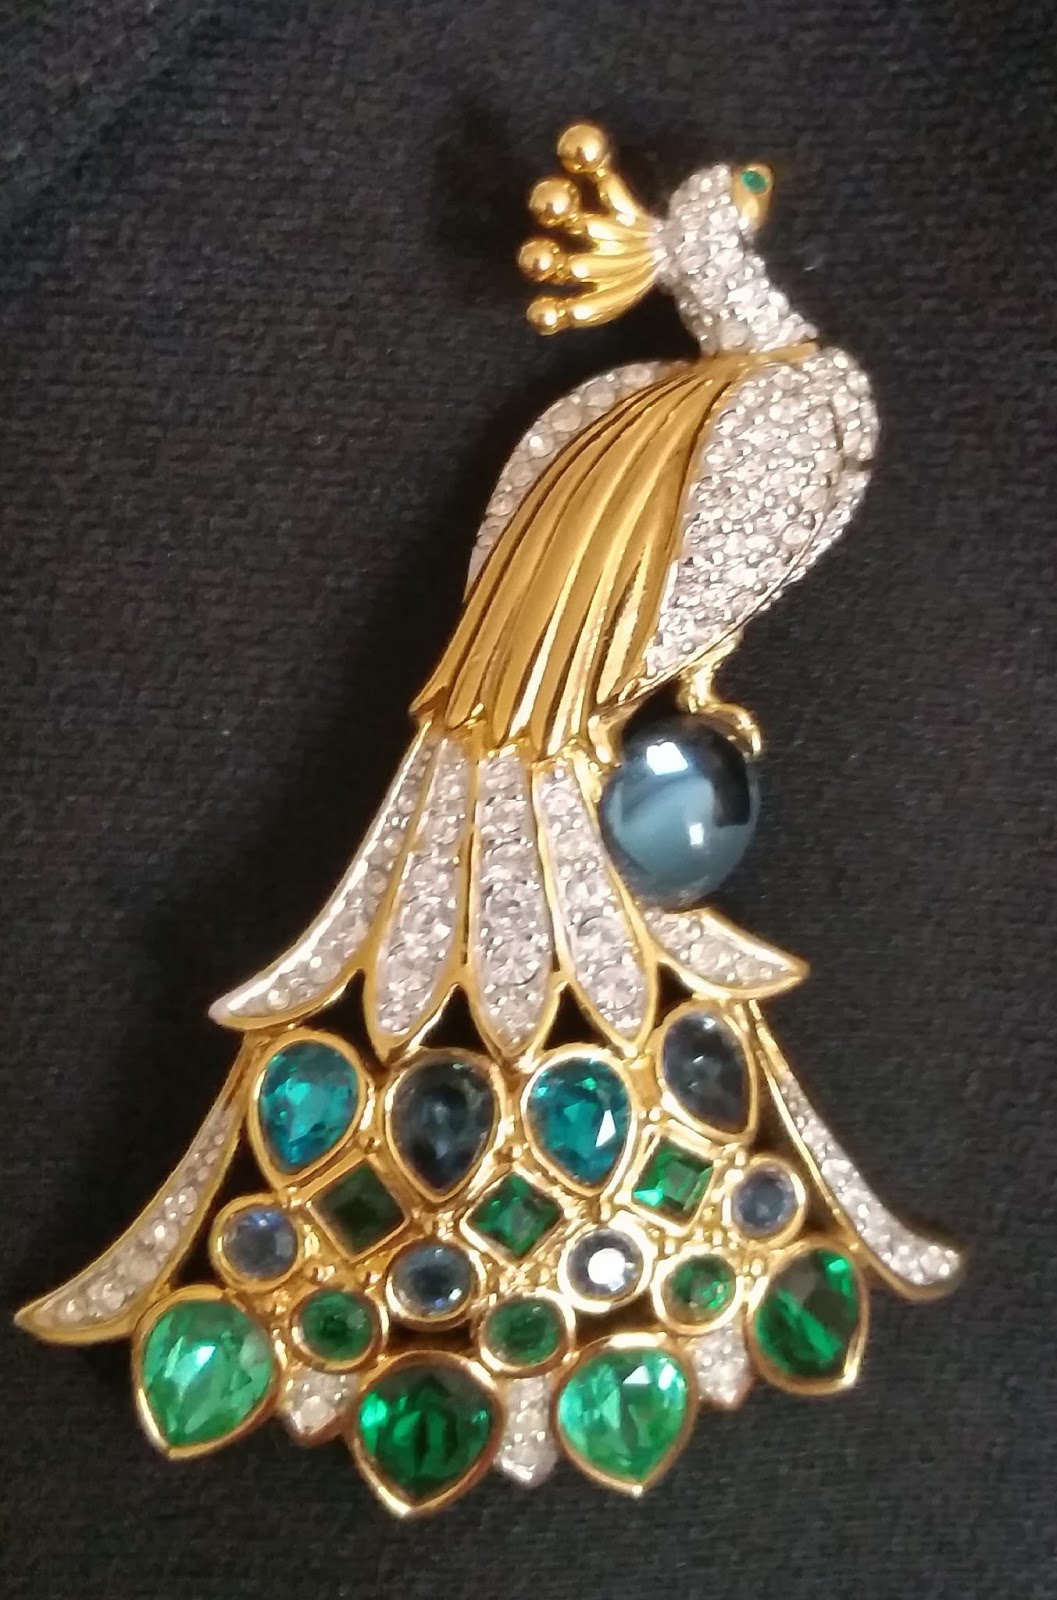 7b4e6efb9a6 SWAROVSKI SIGNED PAVE' CRYSTAL PEACOCK PIN ~ BROOCH RETIRED - Wearable art  ~ Scroll down for my version of wearable art